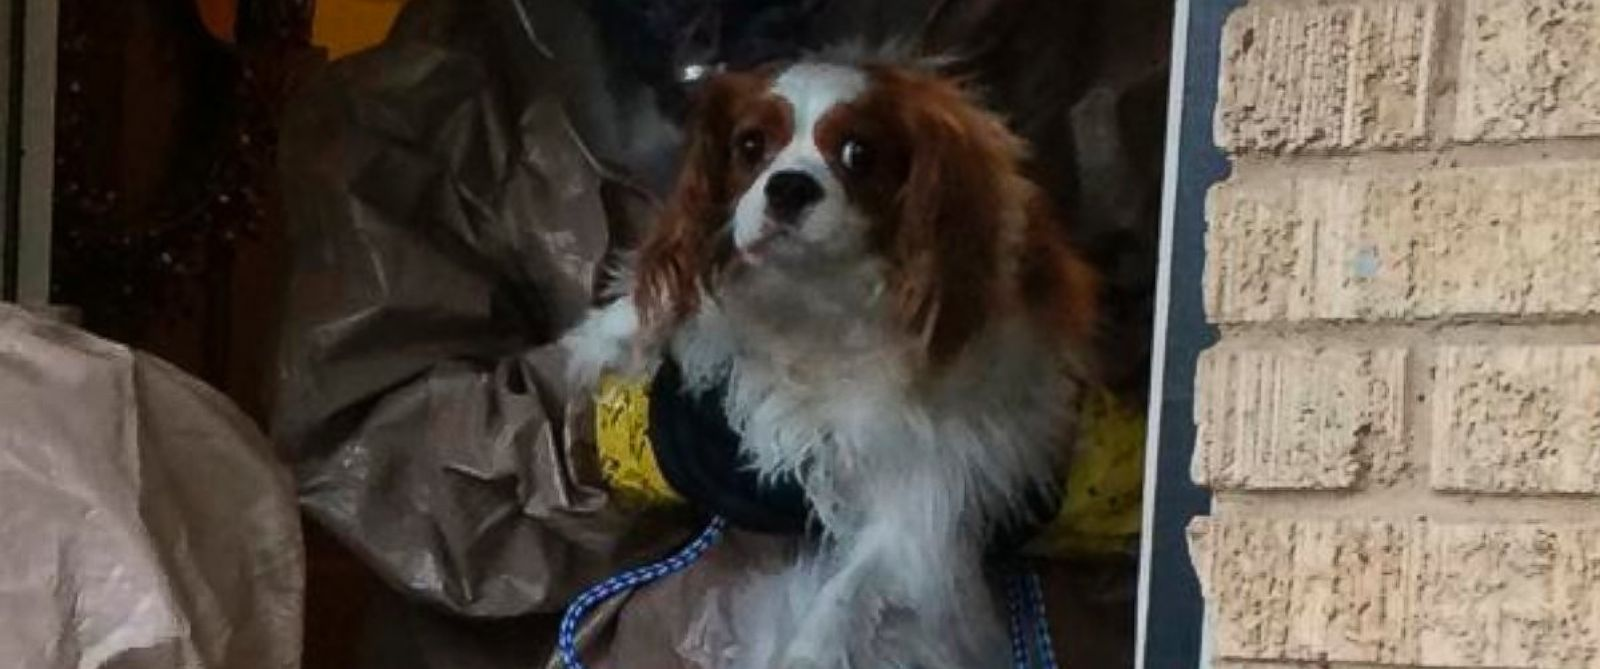 PHOTO: Bentley, the spaniel that belongs to the Texas nurse who is being treated for Ebola, is seen in this photo released by the Dallas Animal Services and Adoption Center on Oct. 14, 2014.